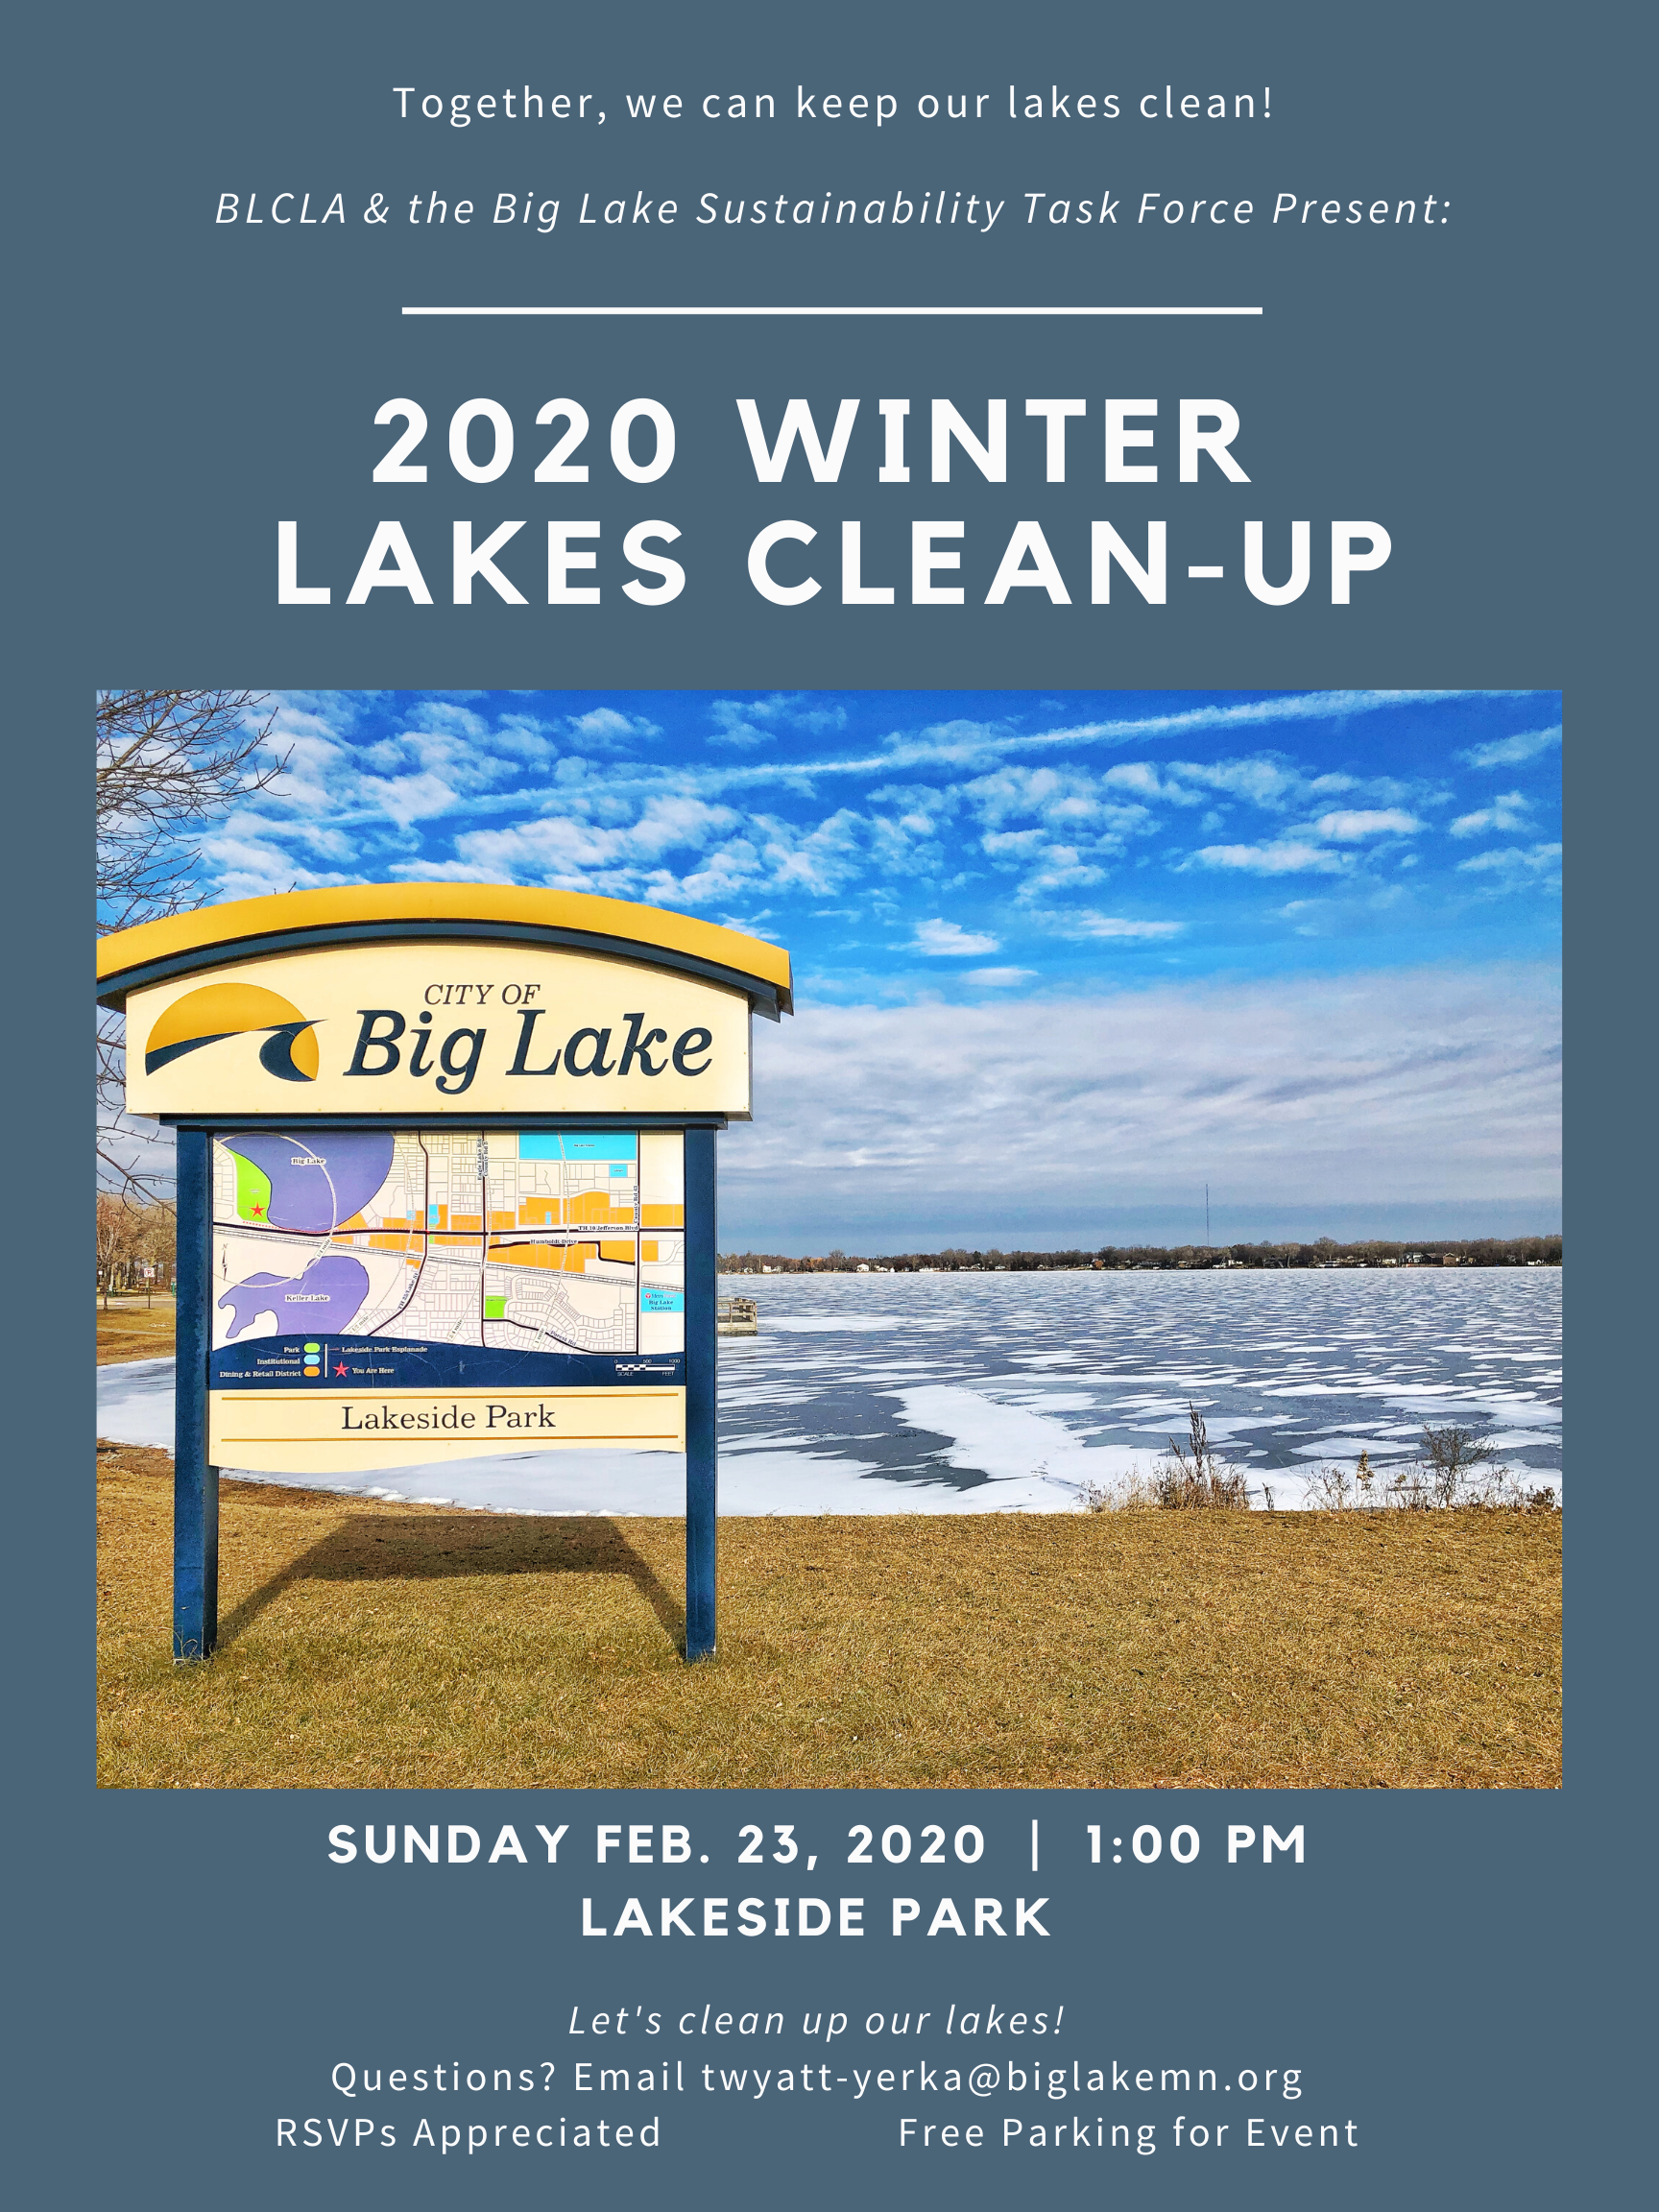 2020 WINTER lakes clean-up